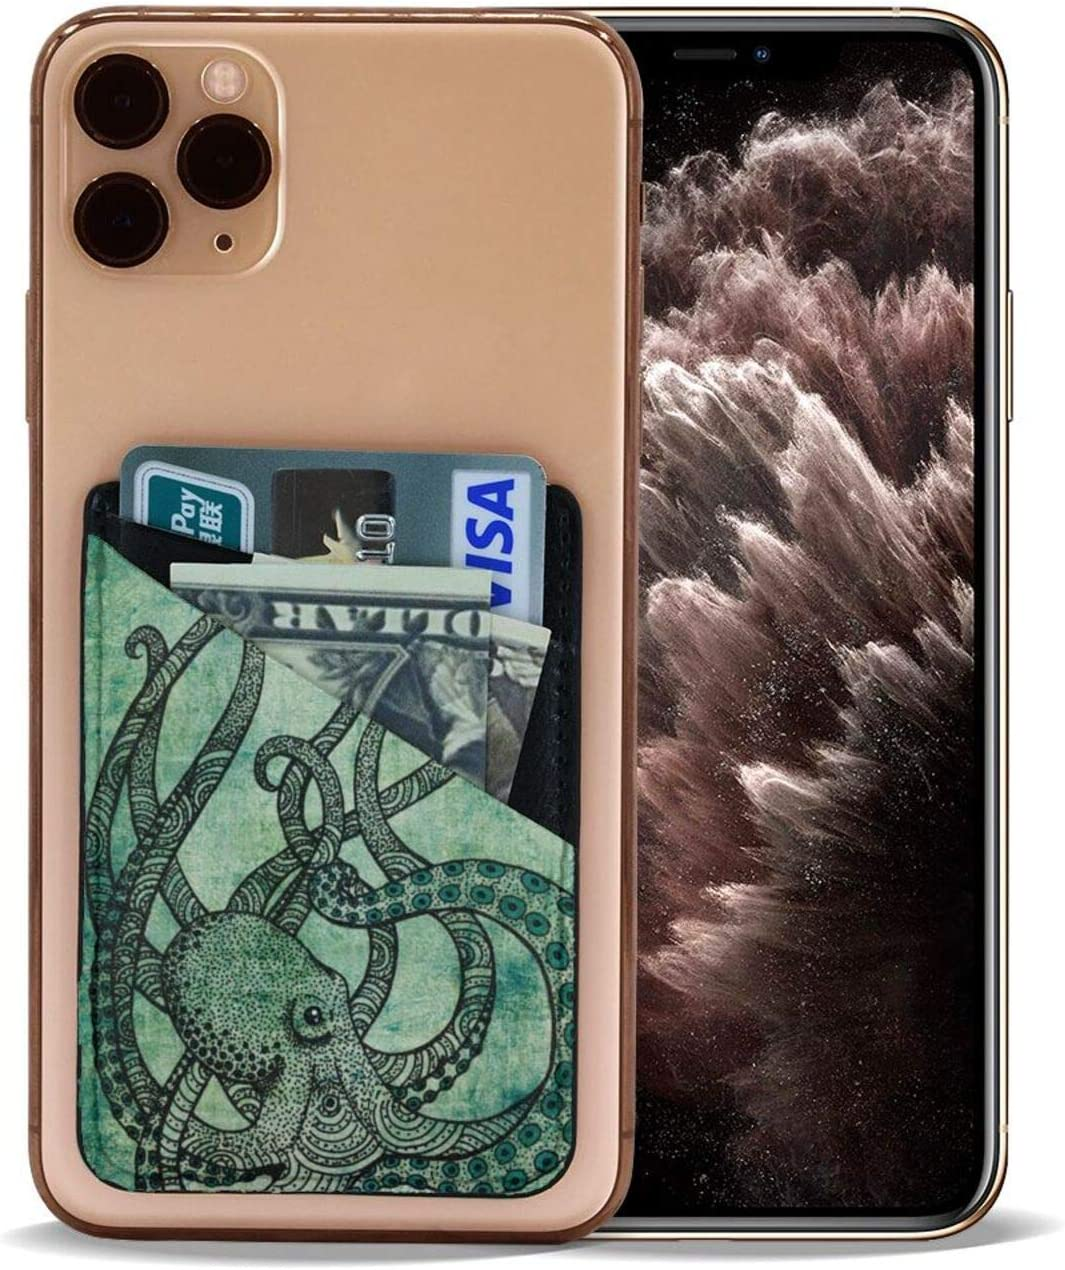 Vintage Octopus Phone Card Holder, Stick-on ID Credit Card Wallet Phone Case Pouch Sleeve Pocket for iPhone, Android and All Smartphones